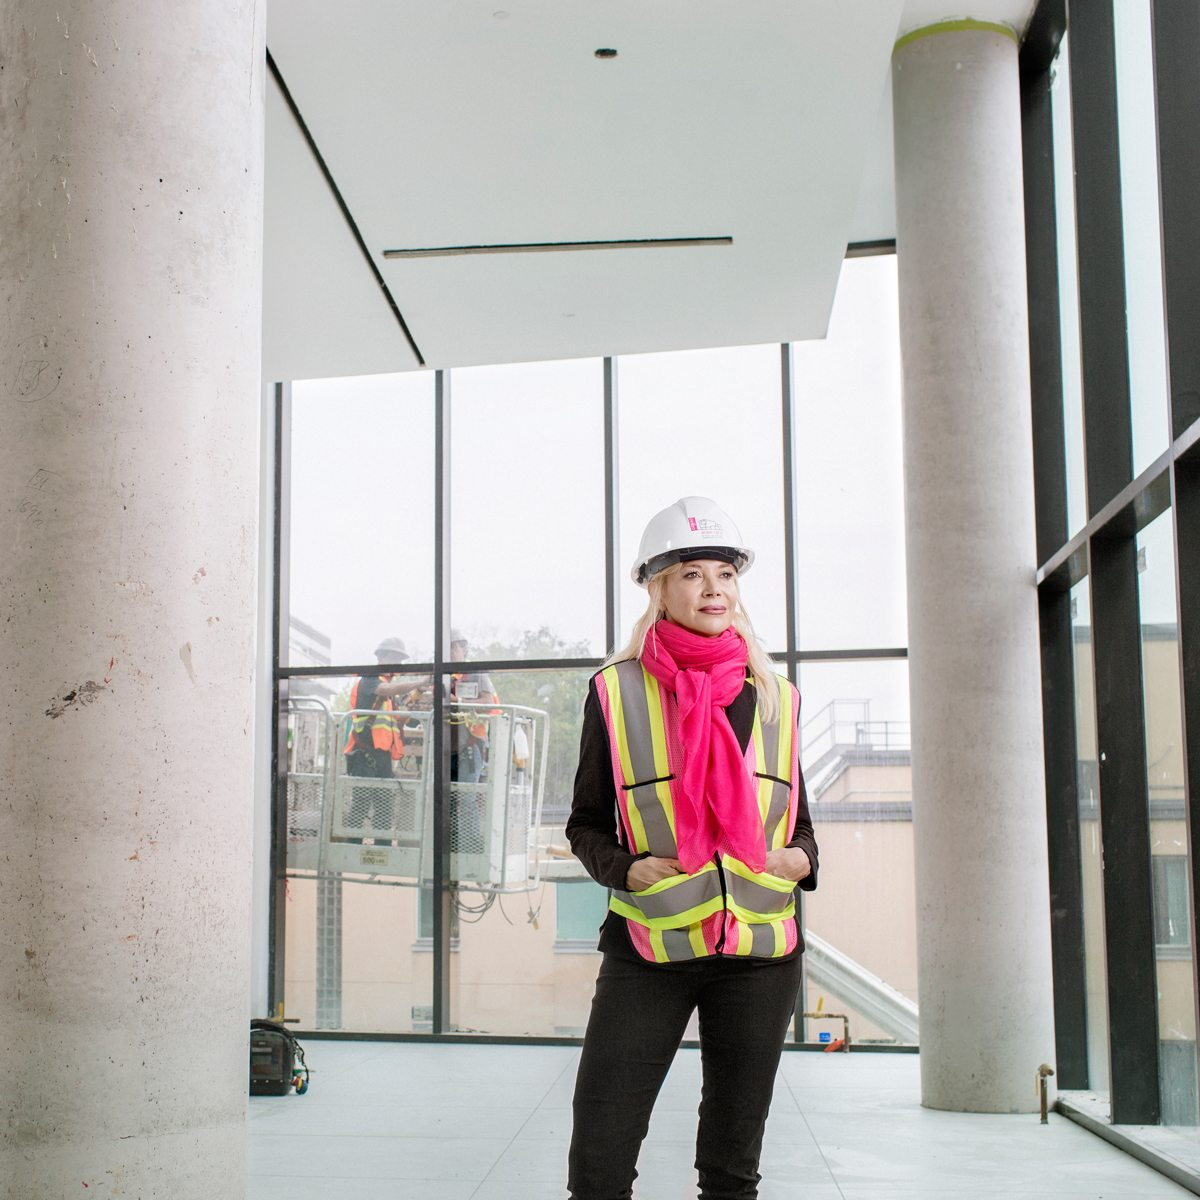 Such great heights: Alexandra Badzak, OAG director, was hired to spearhead the renovated gallery. Photo: Jamie Kronick